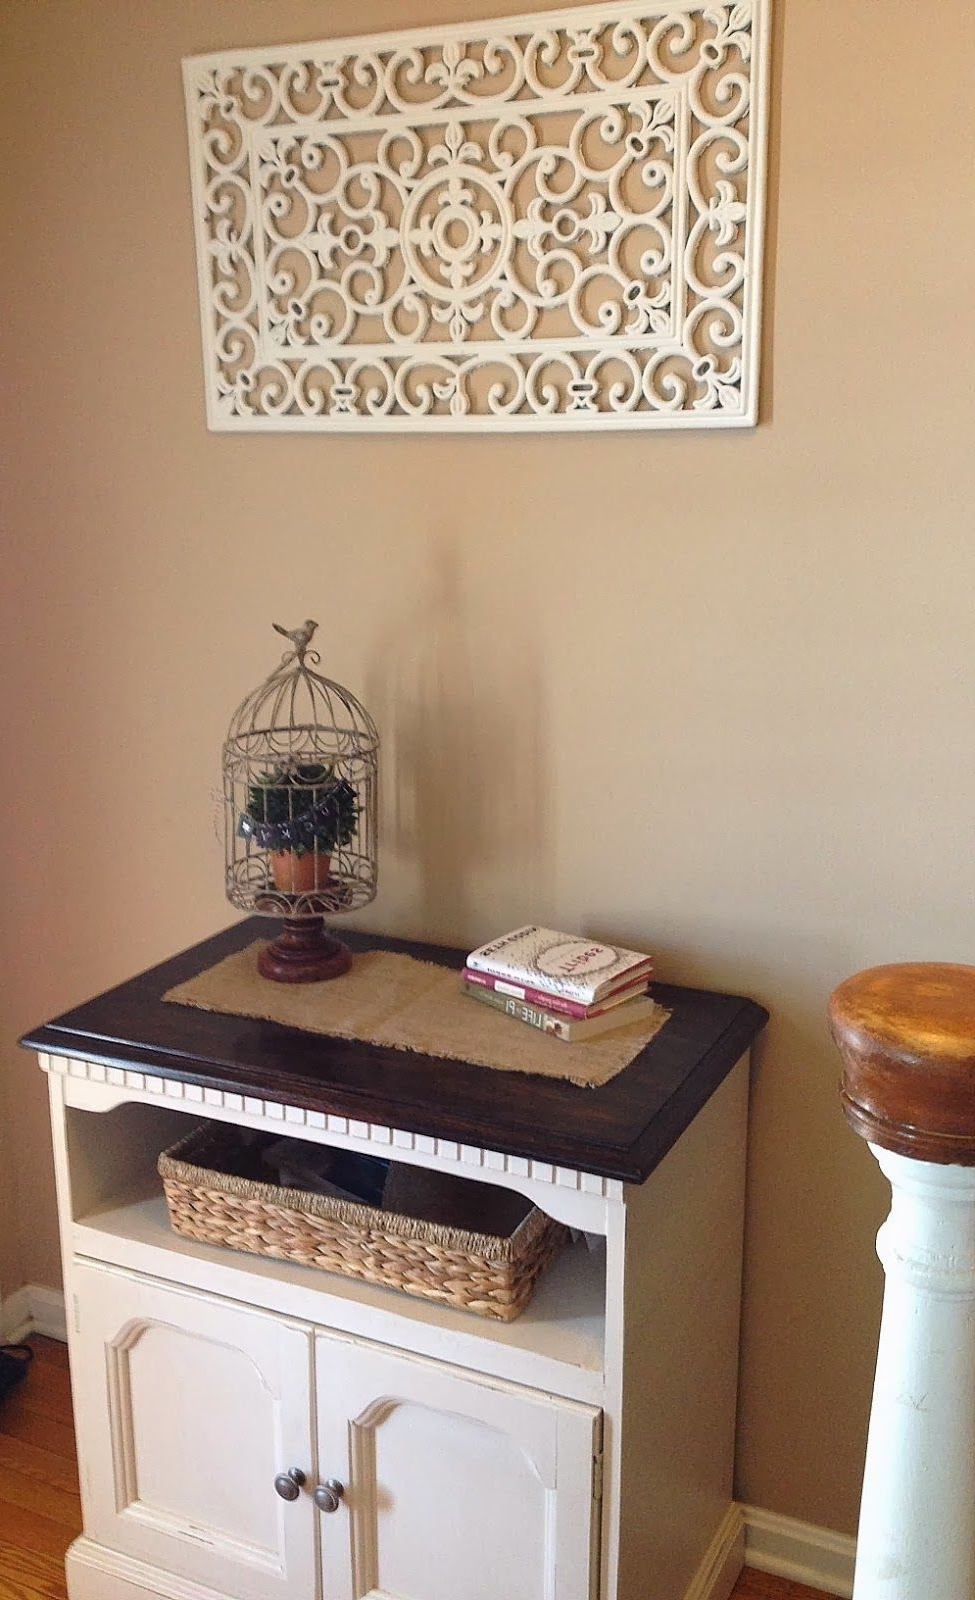 Latest Pottery Barn Wall Art Intended For Diy Pottery Barn Wall Art Knockoff (View 12 of 15)